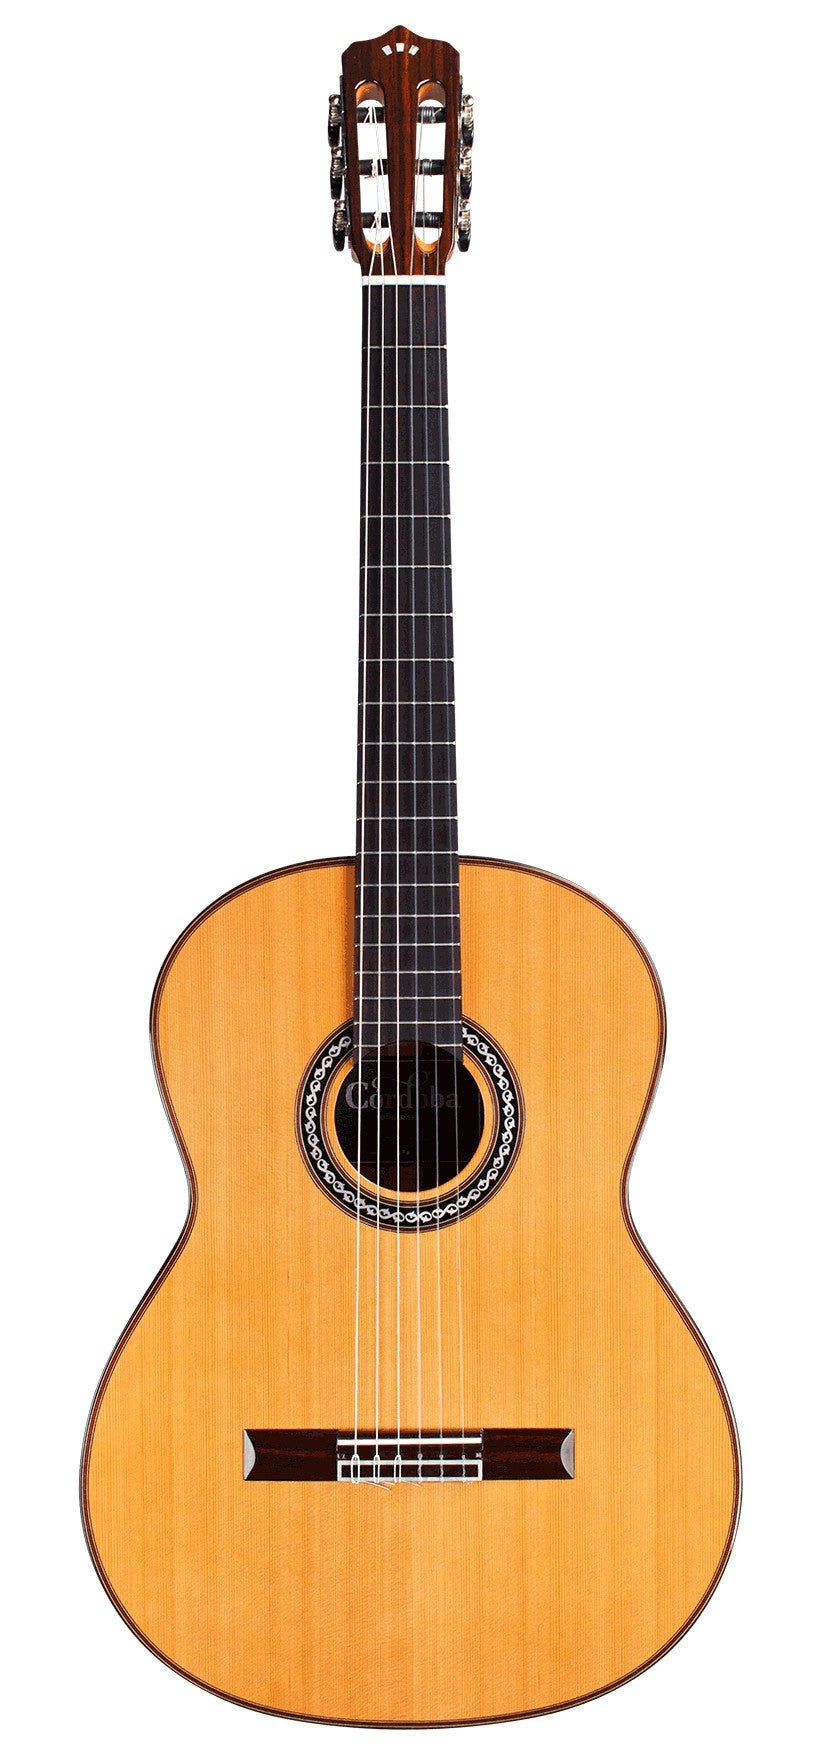 Cordoba C9 Crossover All Solid Cedar/Mahogany Steel String Acoustic Guitar